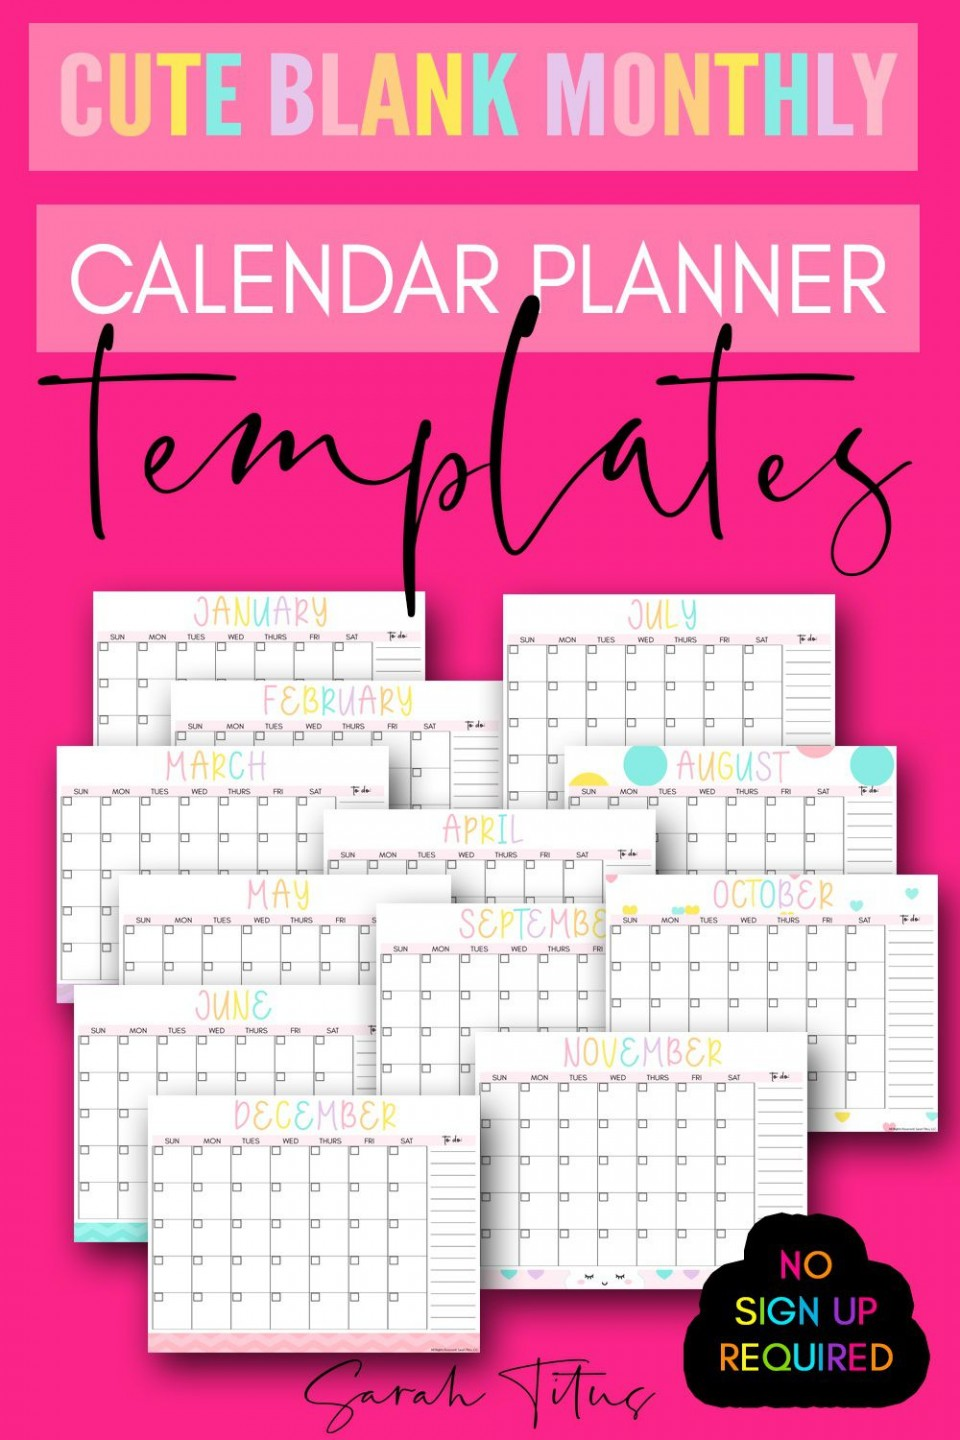 008 Remarkable Free Printable Blank Monthly Calendar Template Picture 960